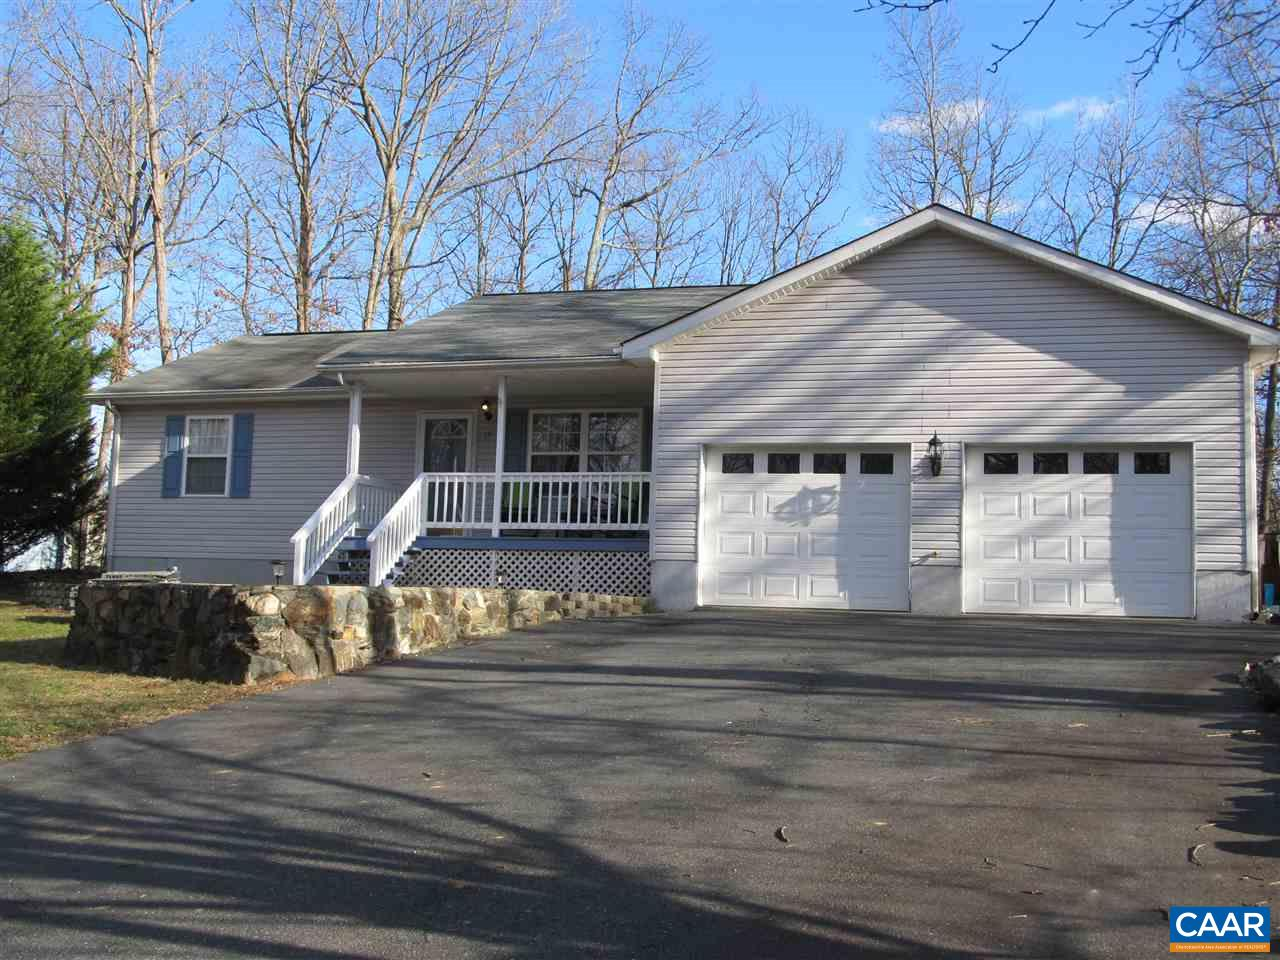 home for sale , MLS #573365, 19 Cliftwood Rd